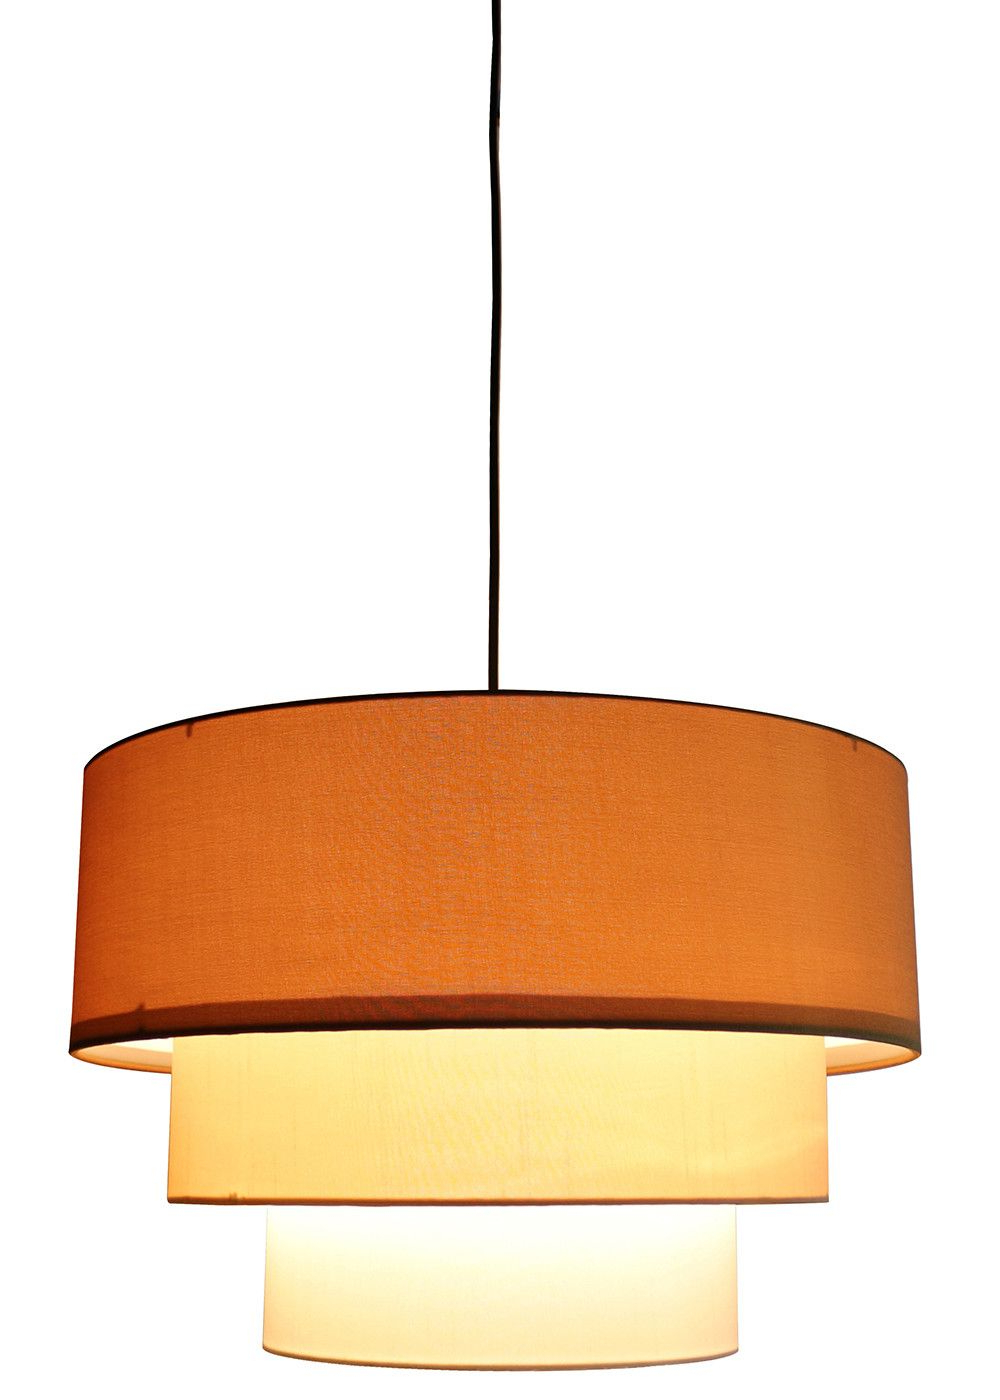 Pinterest – Пинтерест Throughout Newest Burslem 3 Light Single Drum Pendants (View 19 of 20)